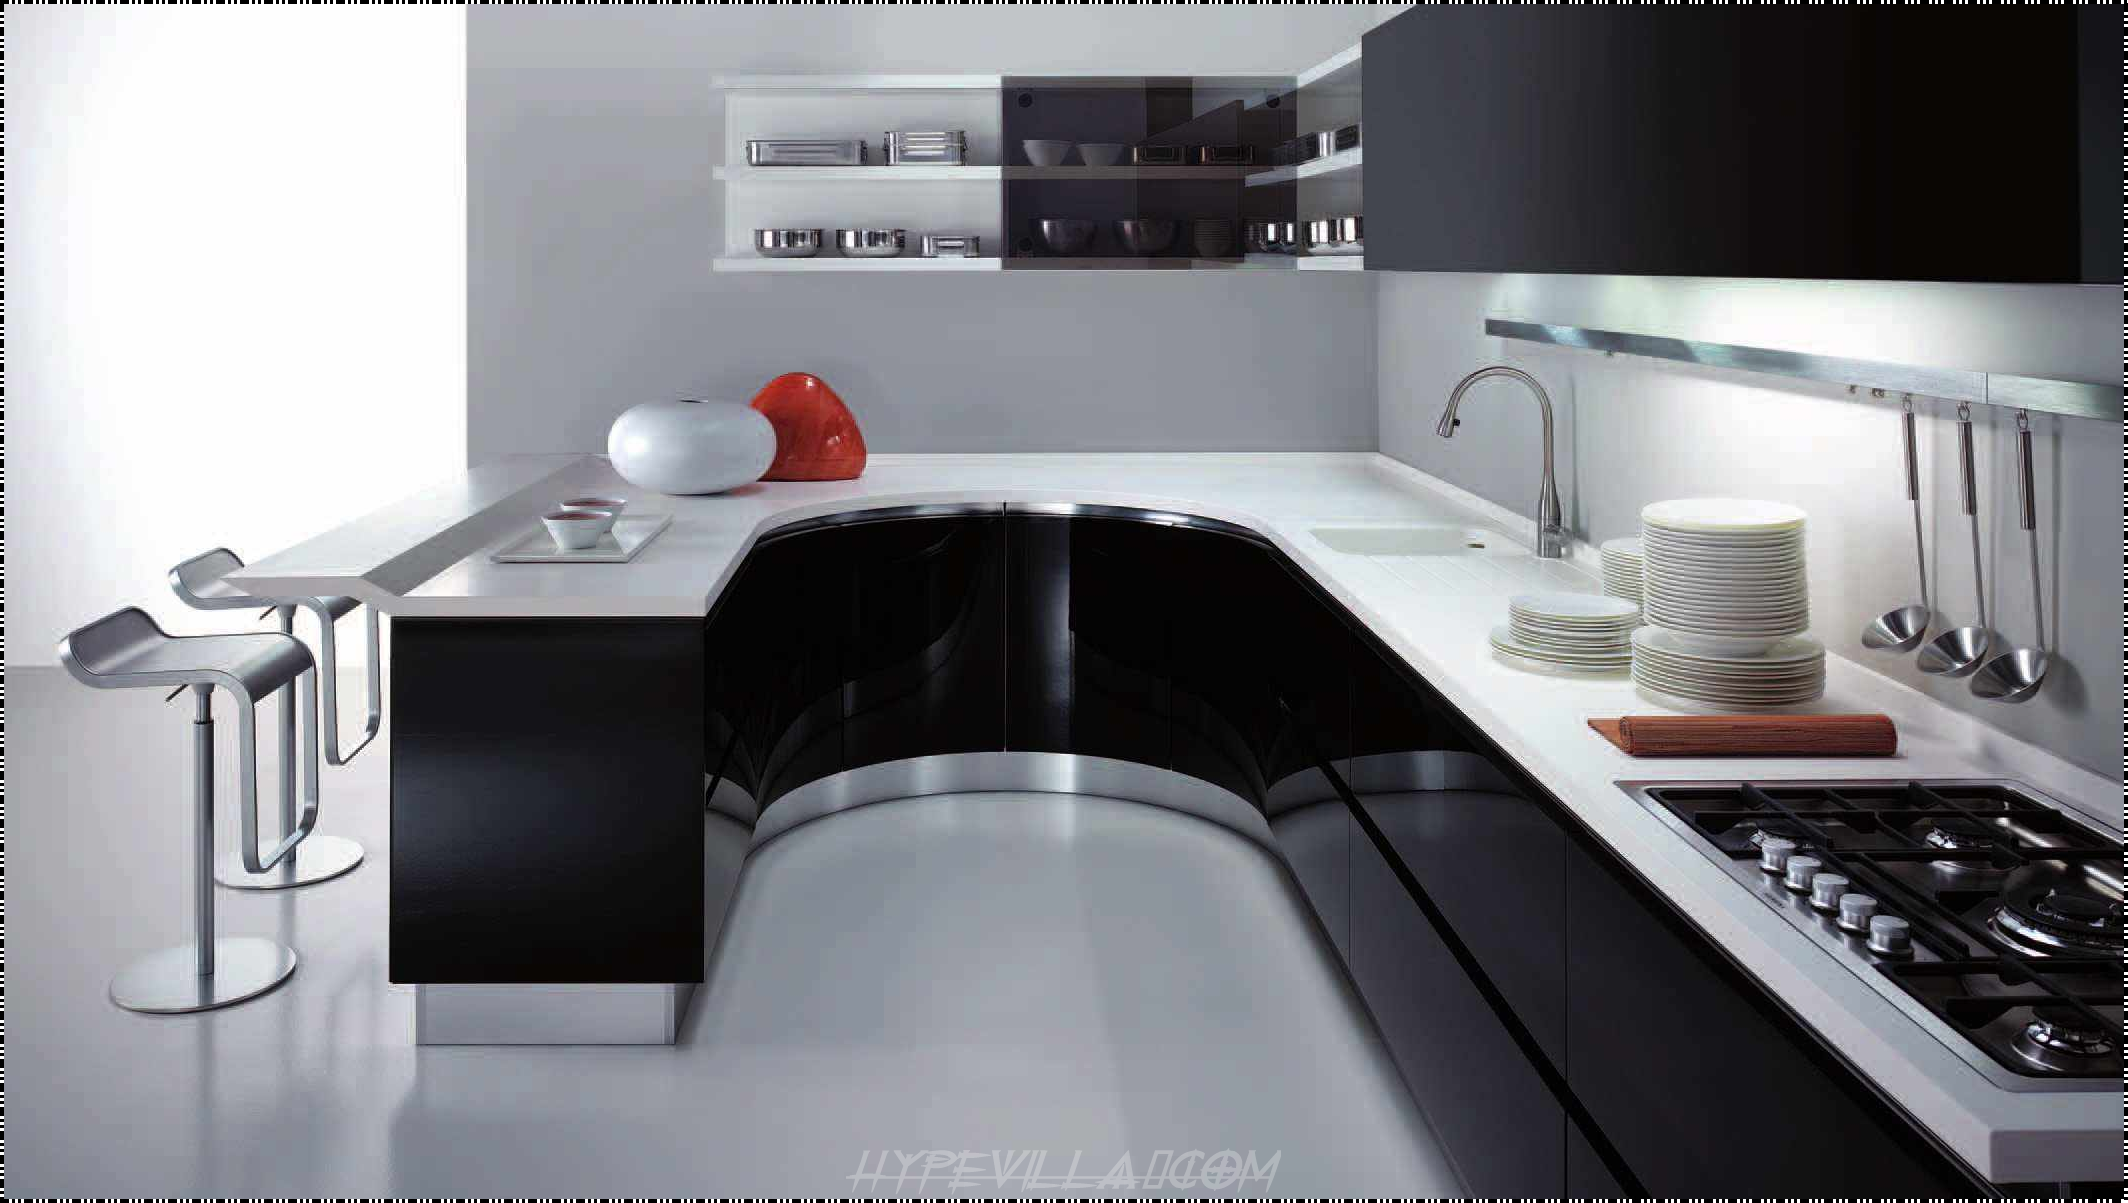 Best kitchen cabinet design interior decorations96 luxury for Good kitchen layout